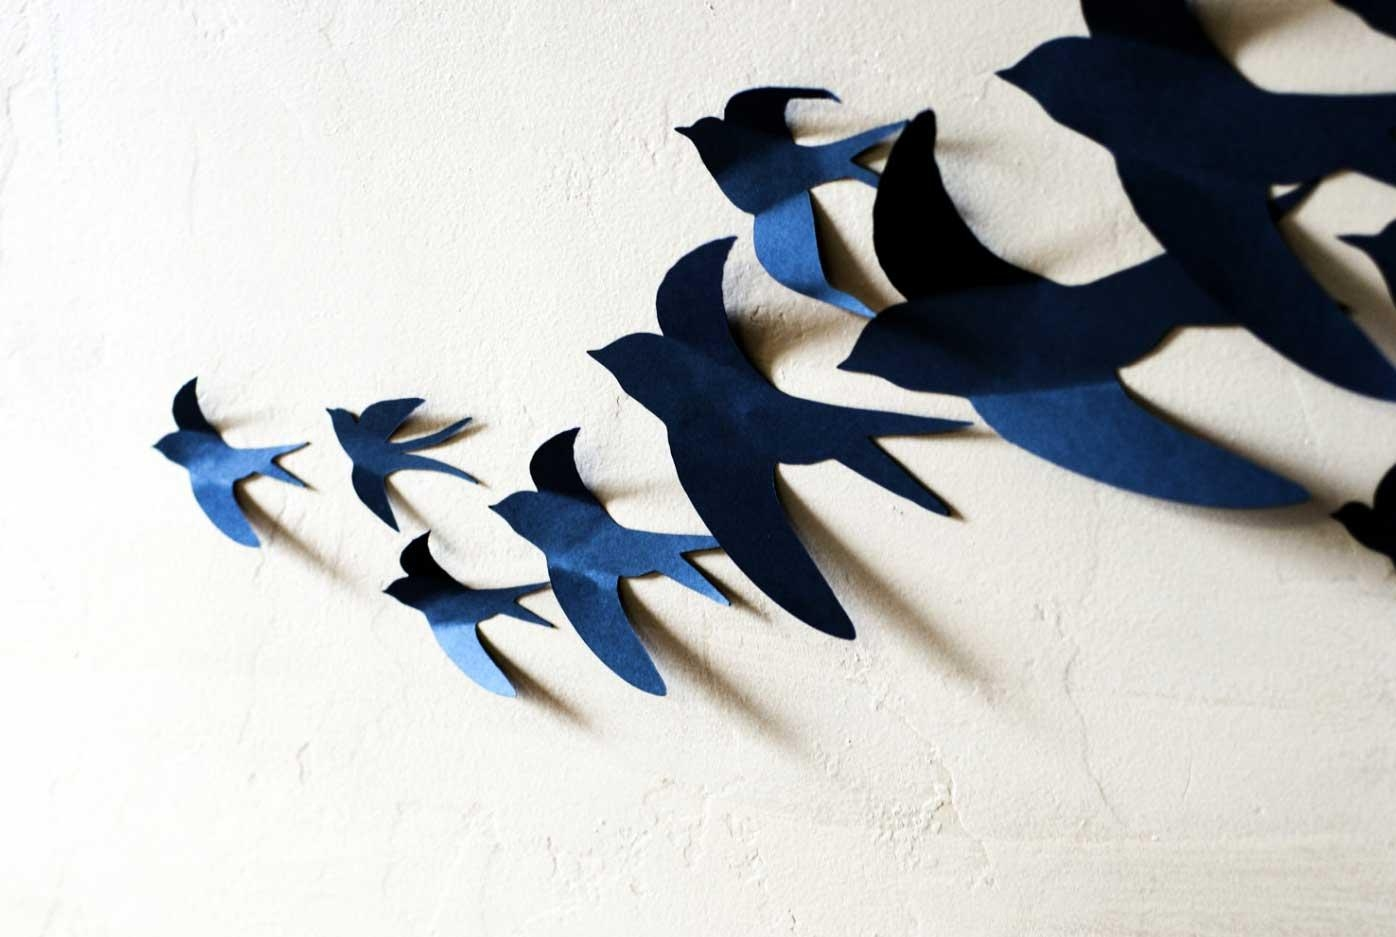 Superb Flying Birds Wall Art Nz Tree With Birds And Colorful Birds Inside Flying Birds Metal Wall Art (View 17 of 20)